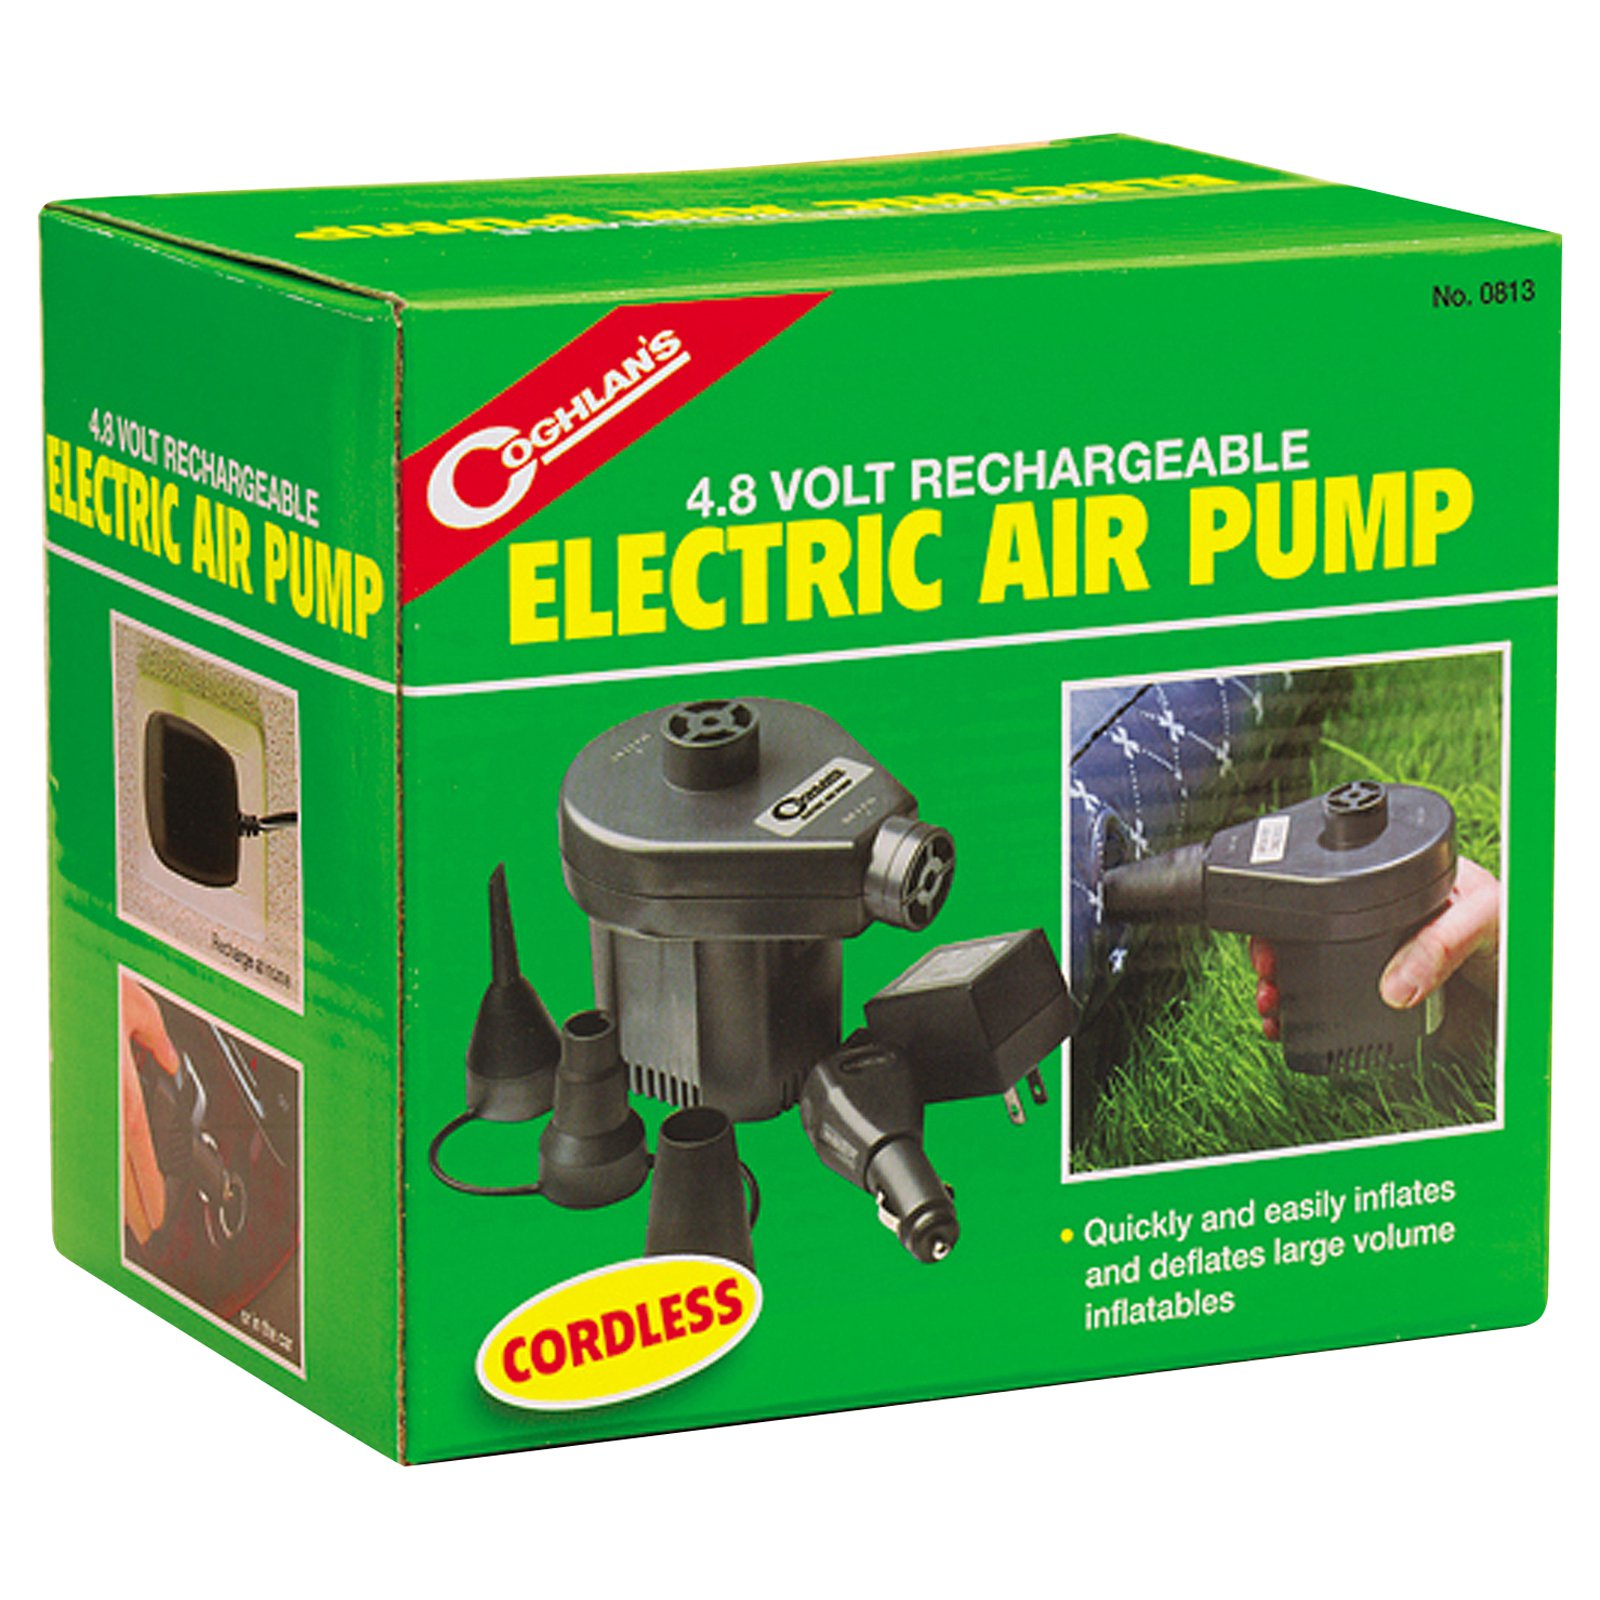 Coghlan's Electric Air Pump